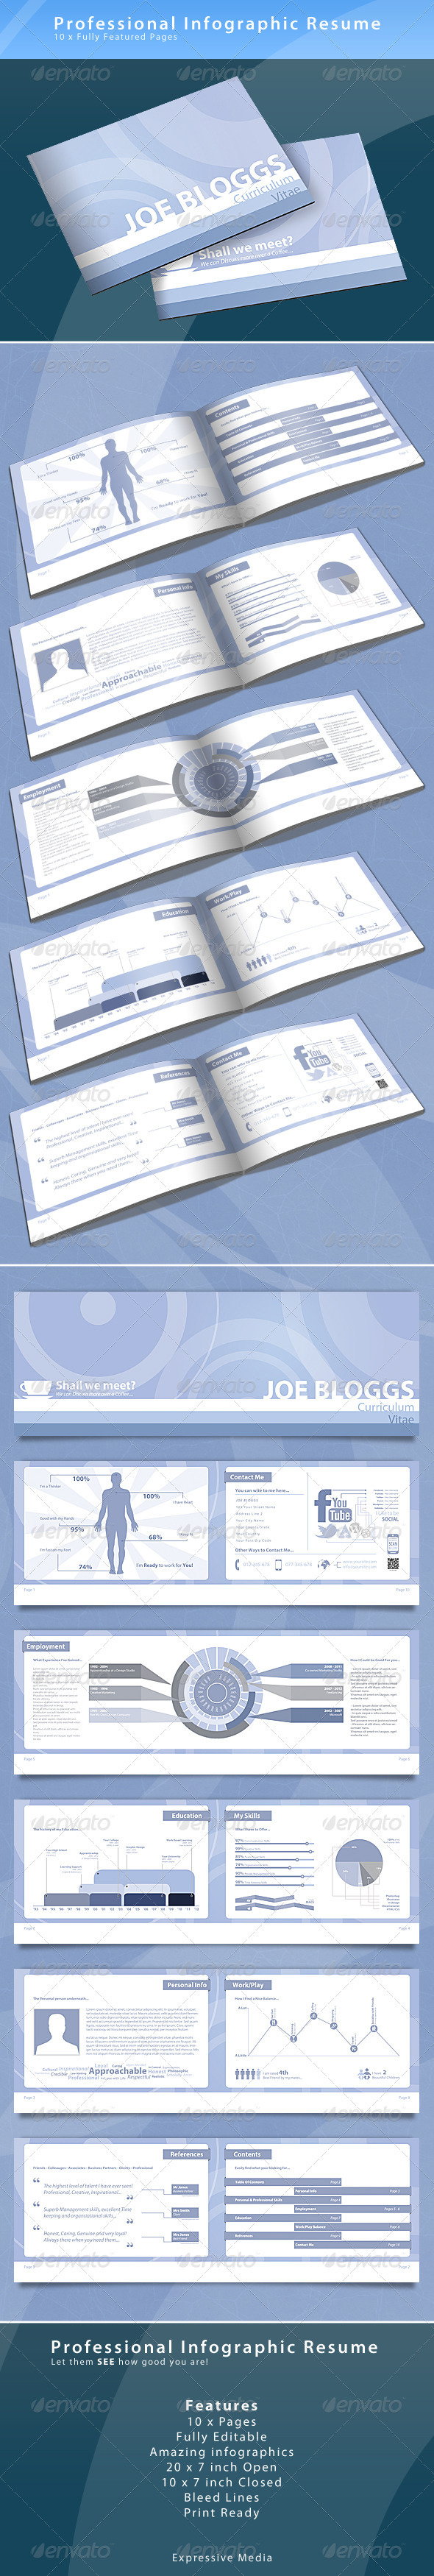 infographic resume booklet print ad templates